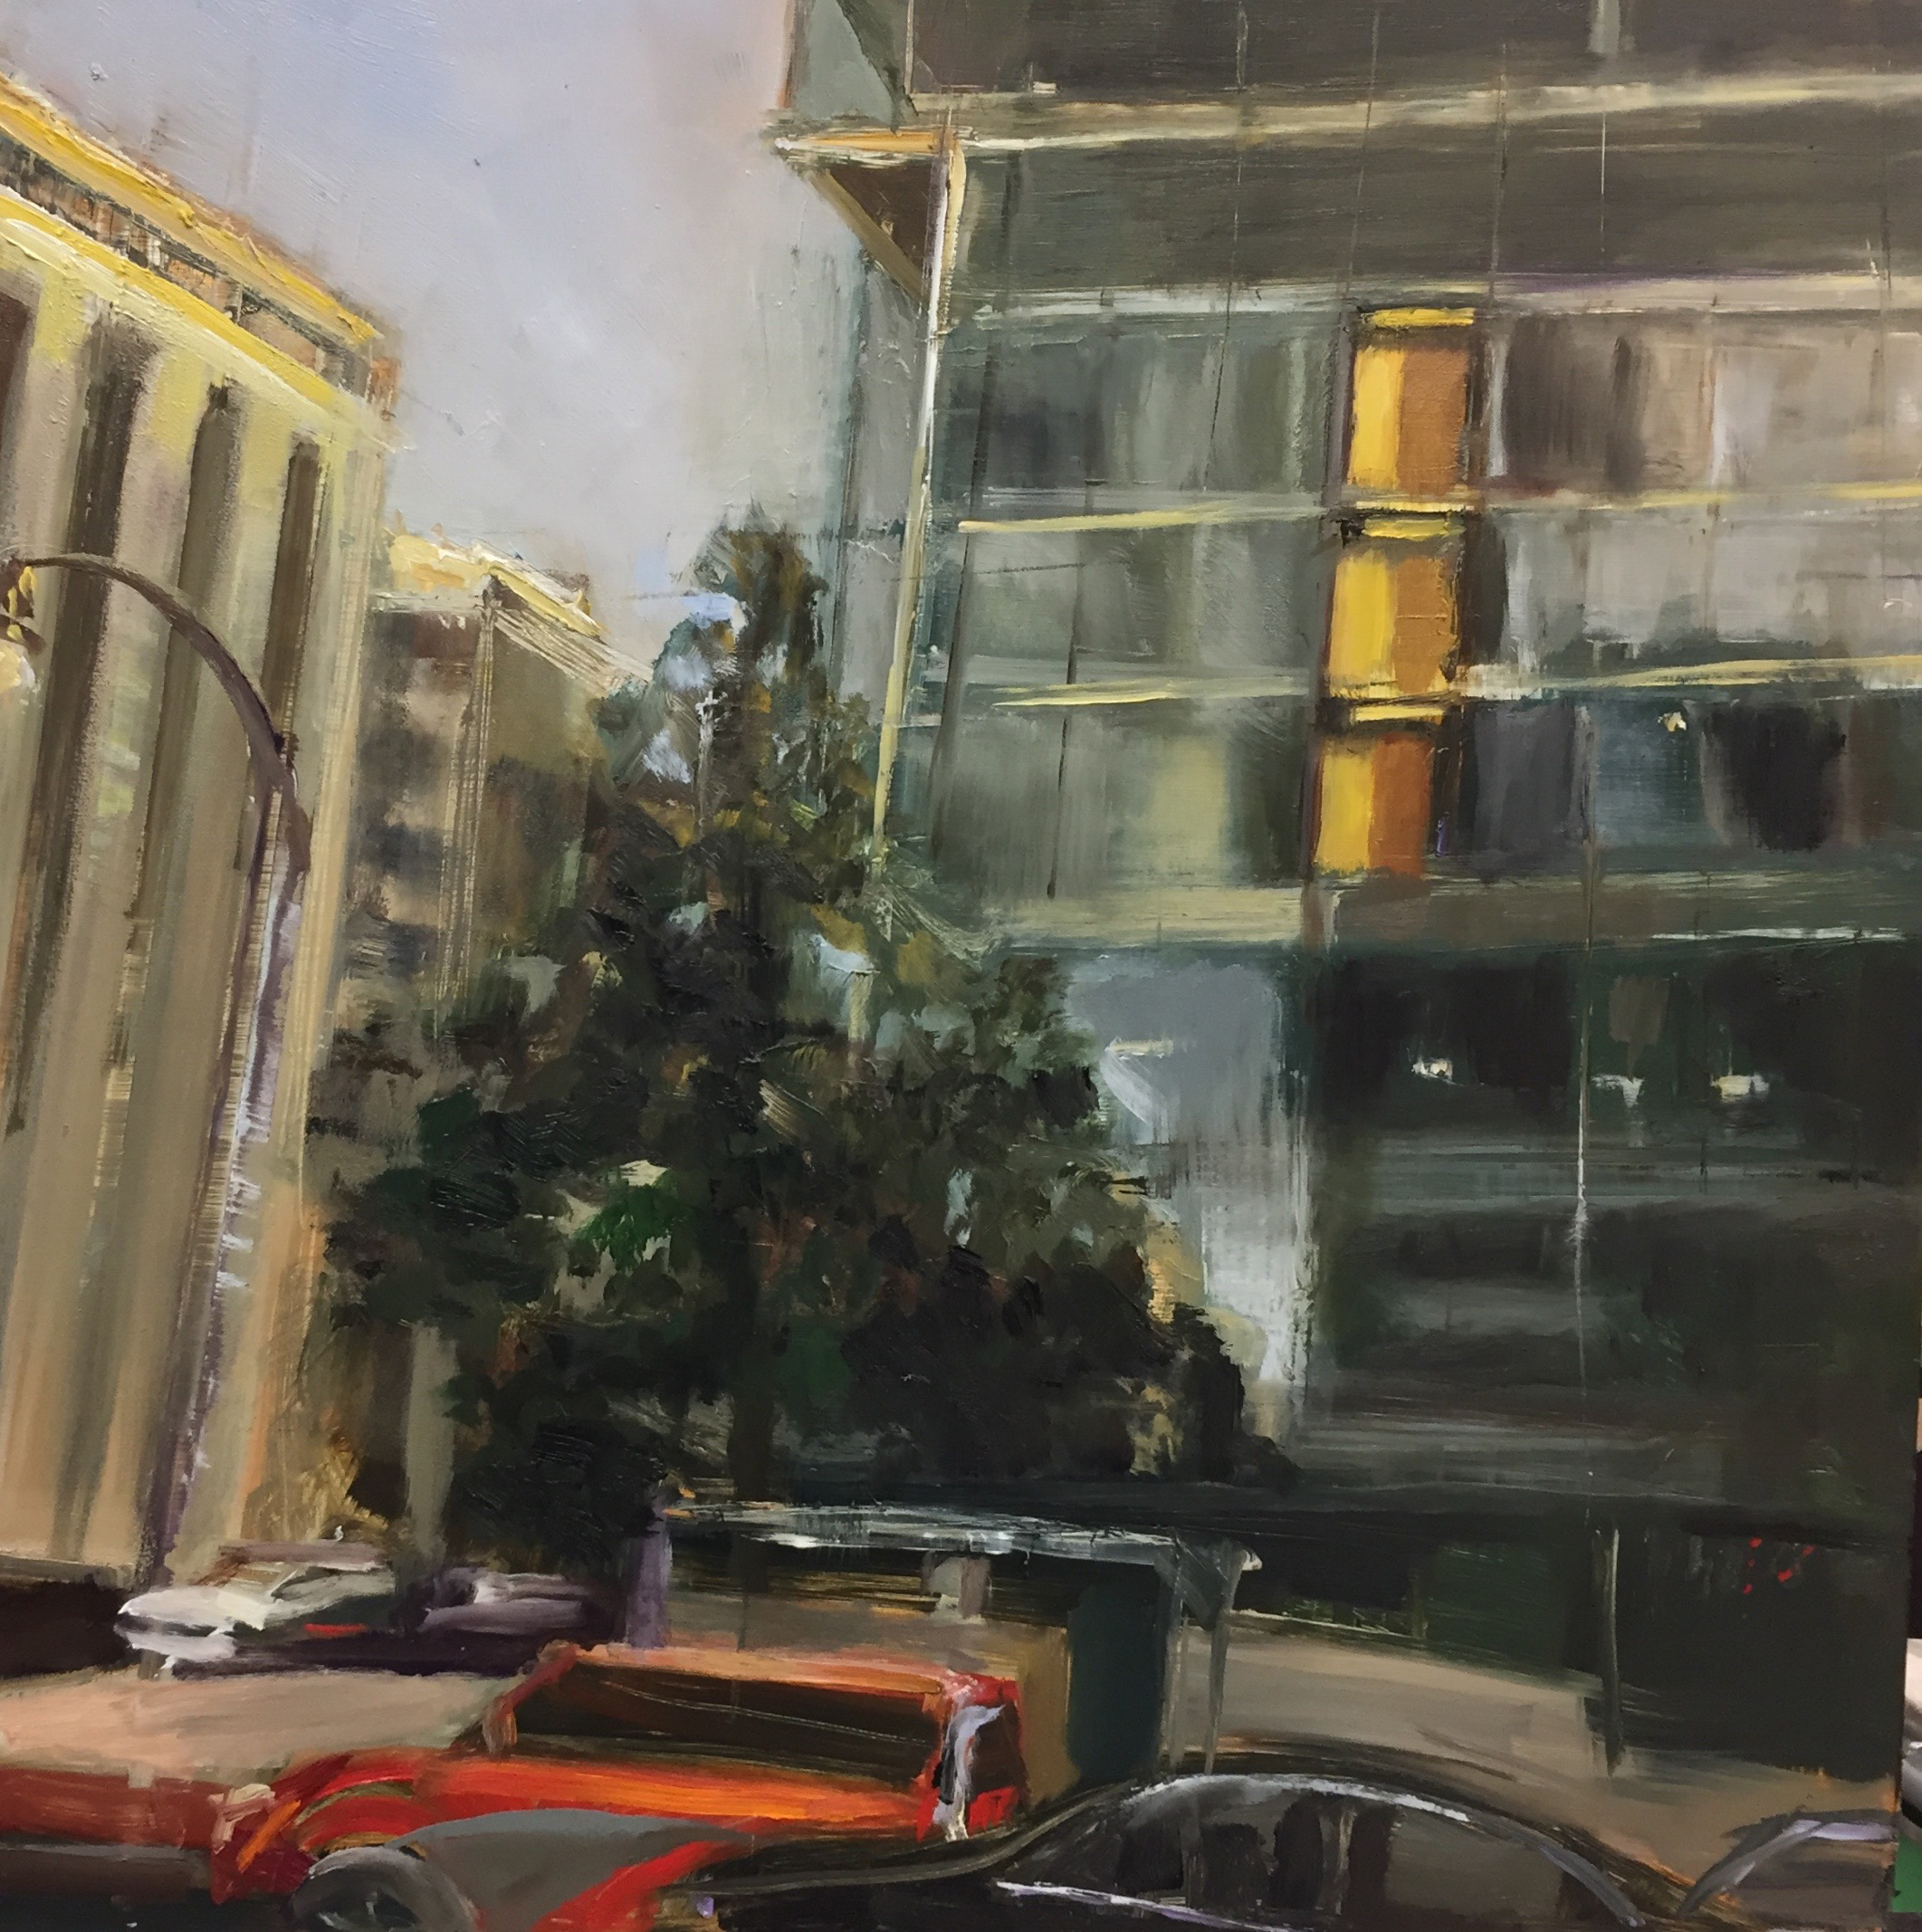 GalleryOonH-Cathy Abramson-K Street-2017-Oil on Canvas-12x12-600.jpg